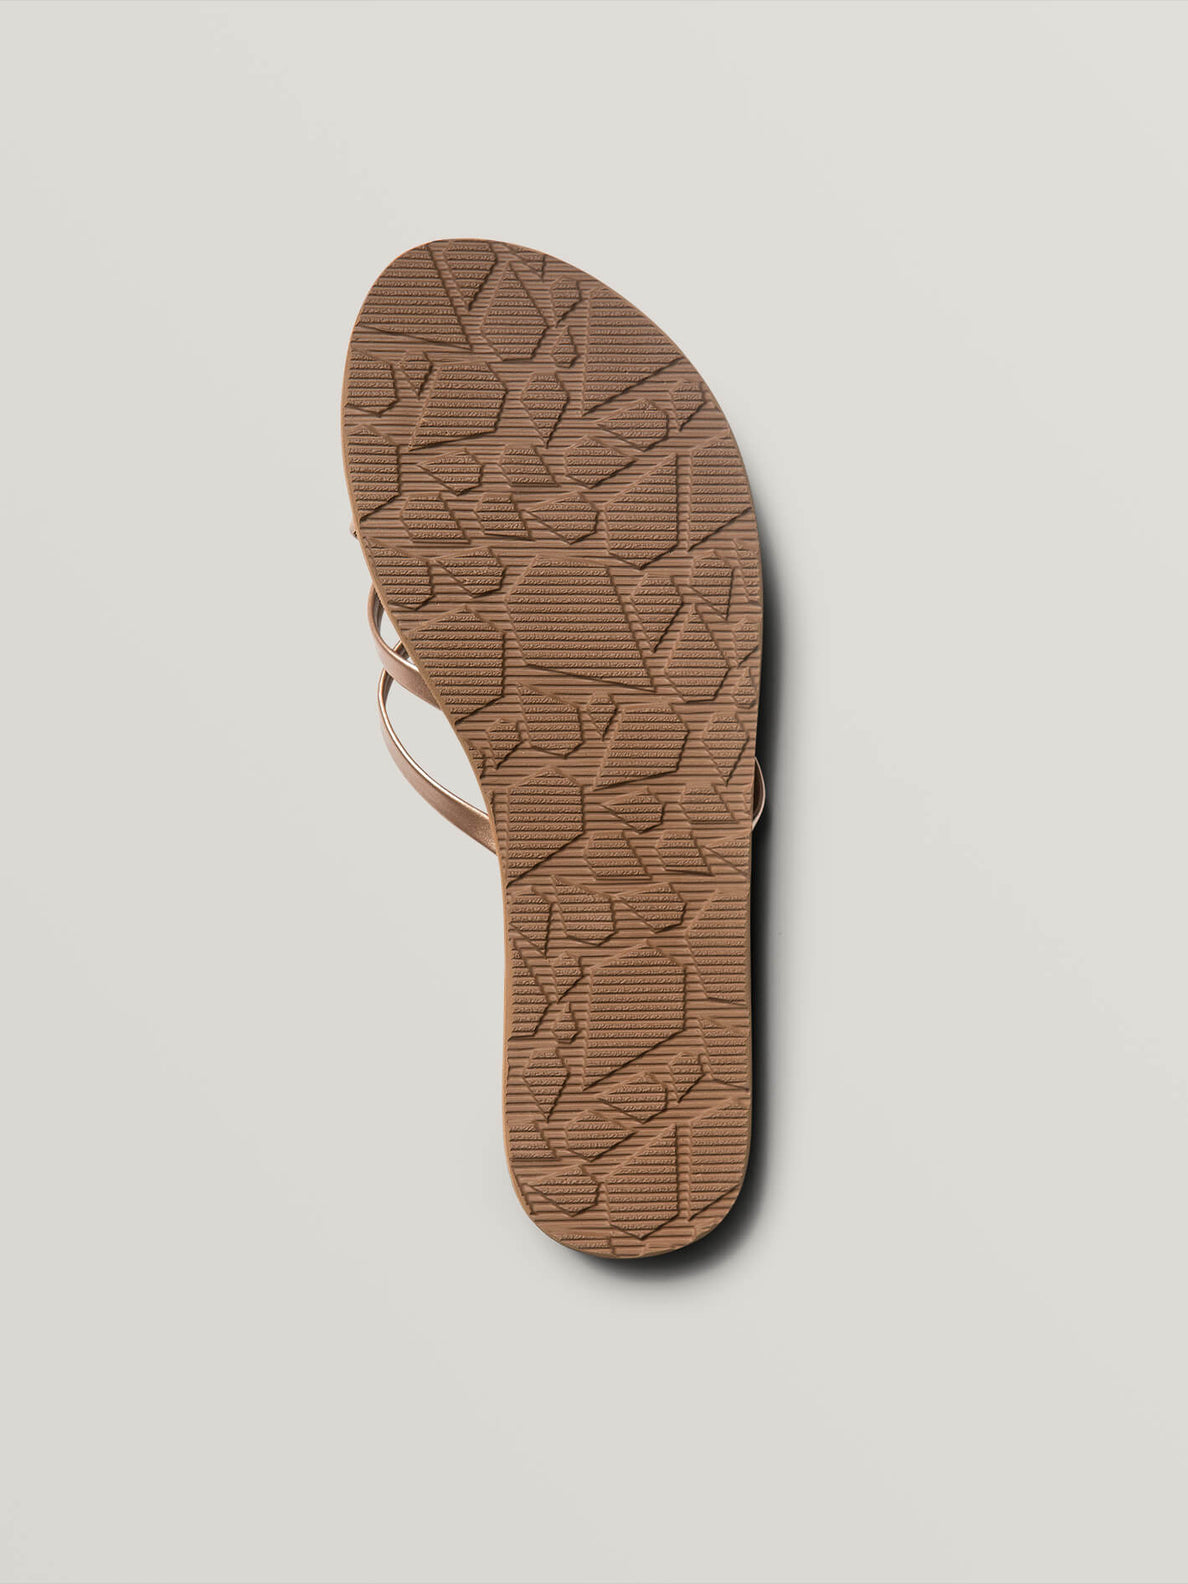 New School Sandals In Rose Gold, Second Alternate View